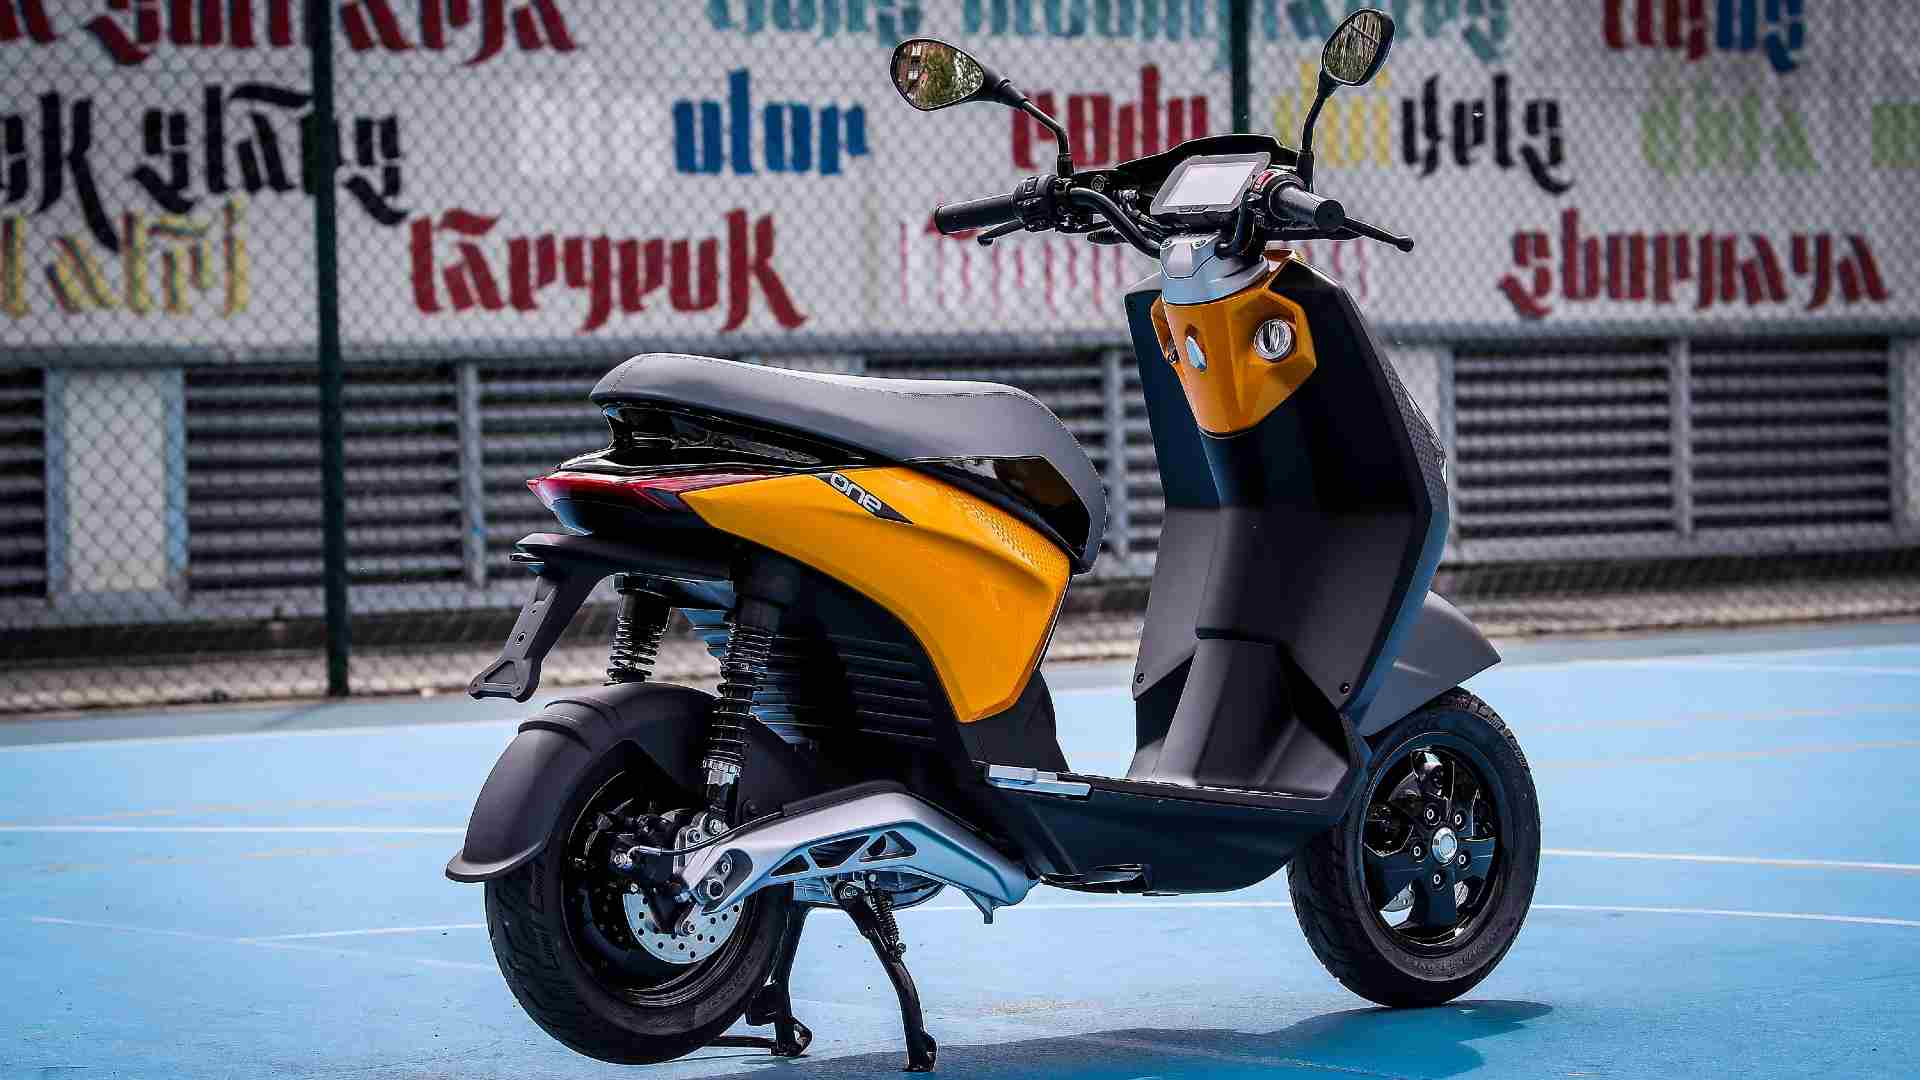 Piaggio will put the One electric scooter on sale in Europe at the end of June. Image: Piaggio